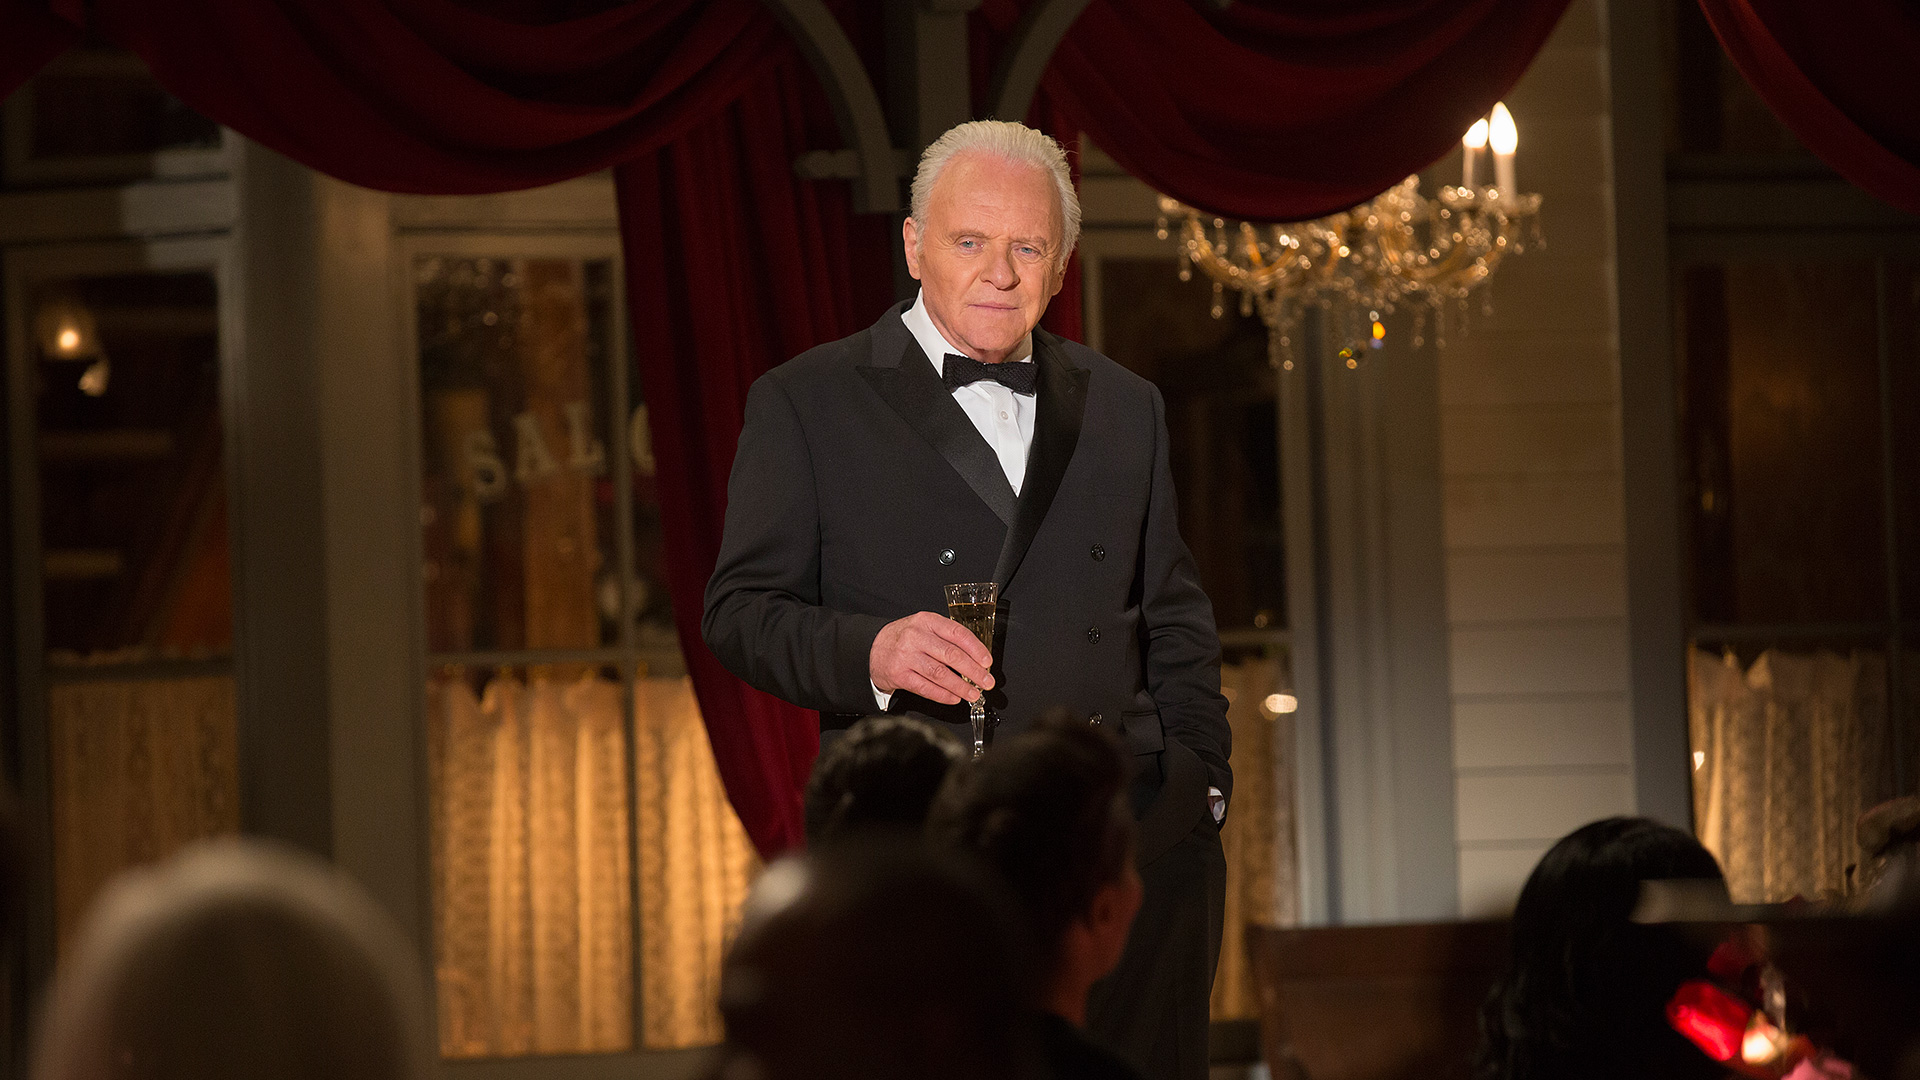 anthony-hopkins-as-dr-robert-ford-westworld-the-bicameral-mind-episode-110